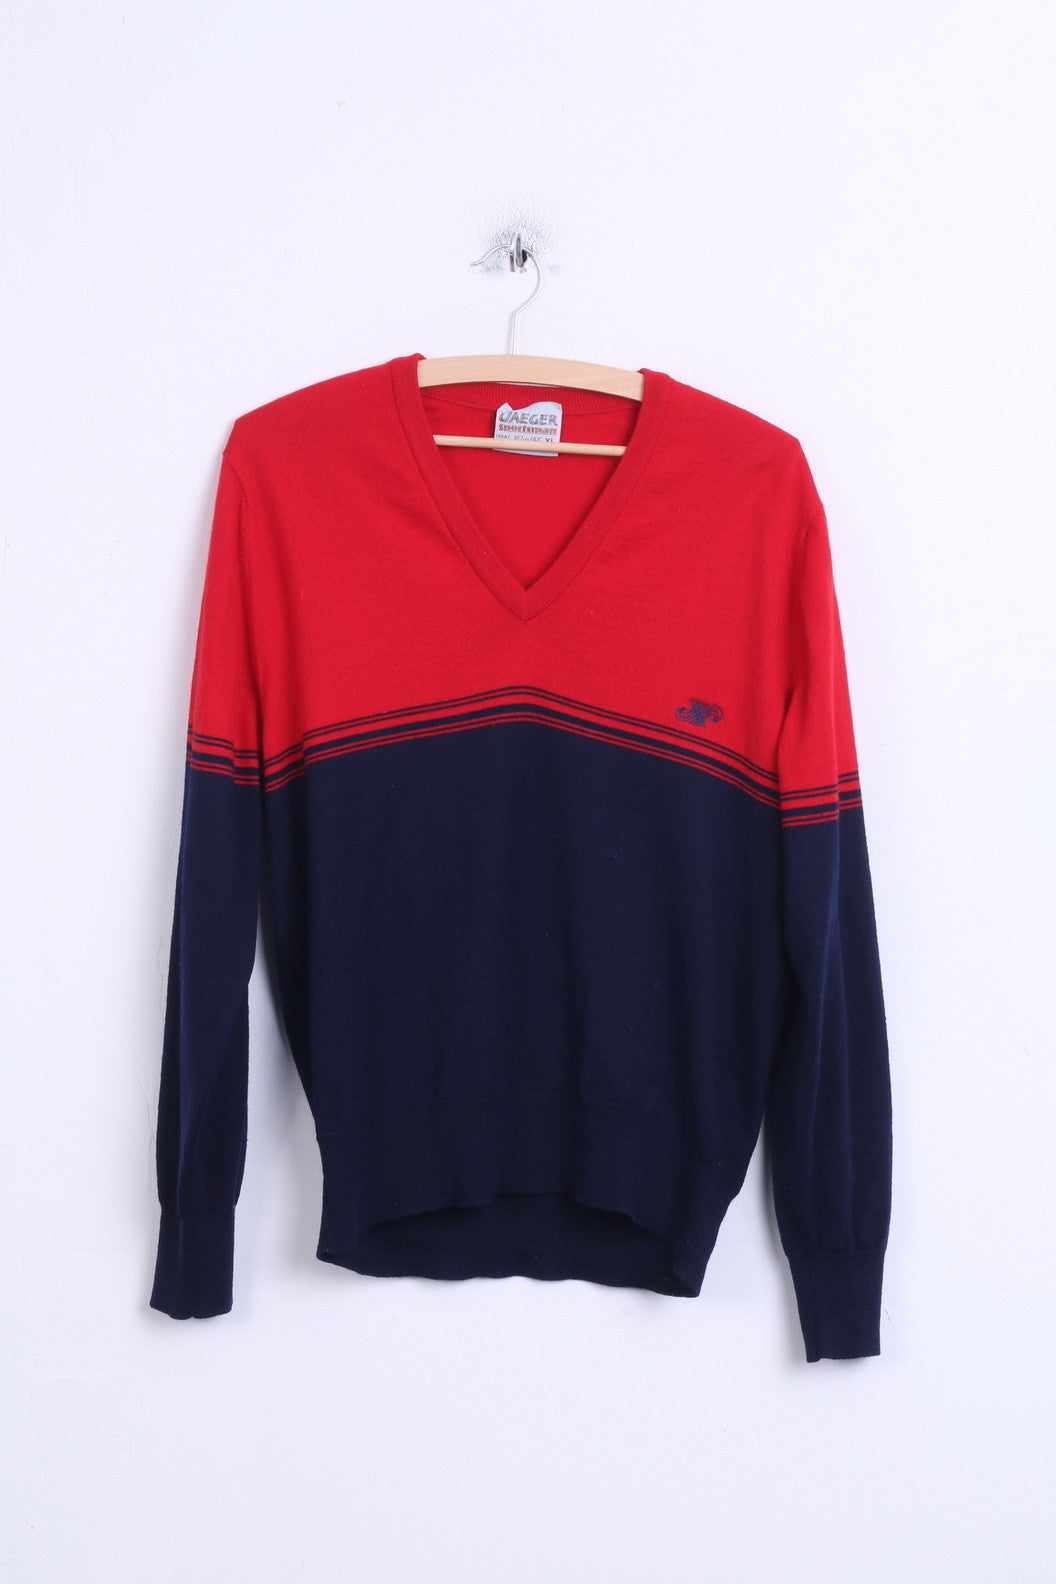 Jaeger Youth 42 Xl Mens S Jumper Sweater Navy Red V Neck Wool Retrospectclothes